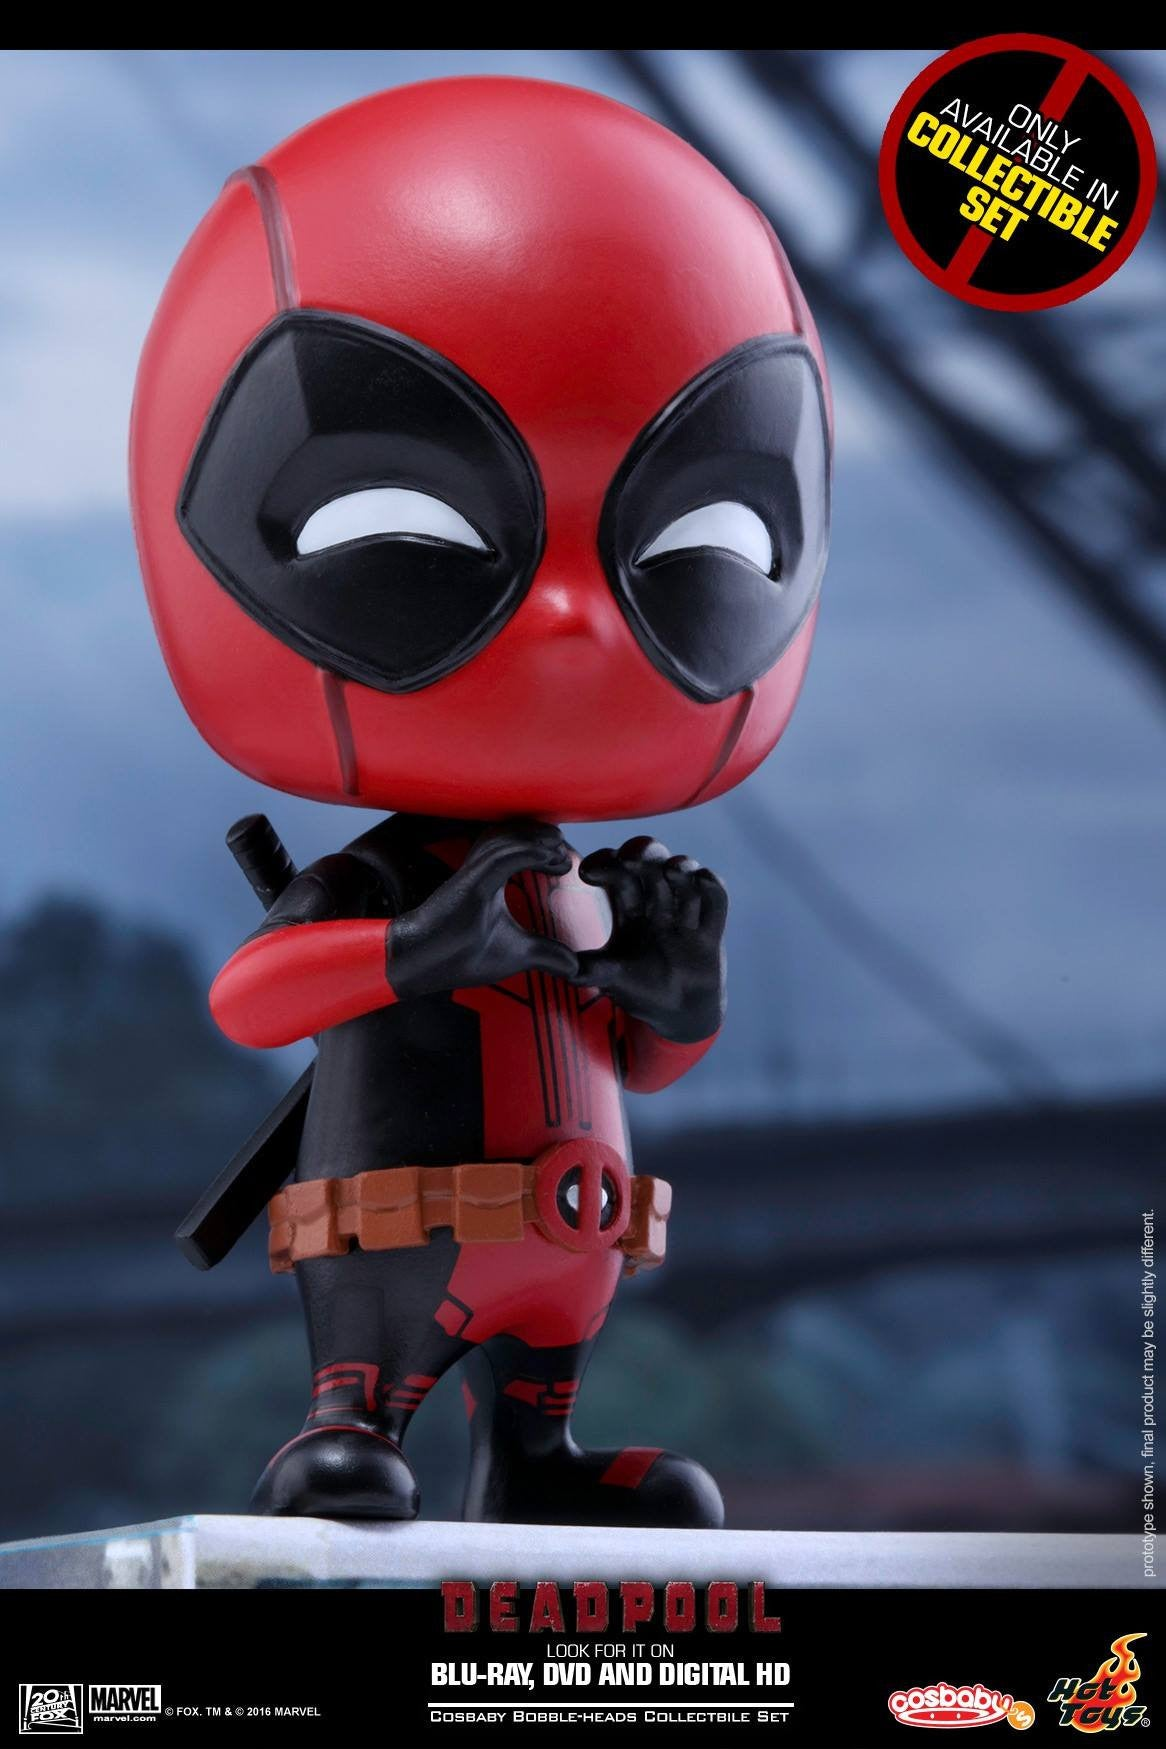 Hot Toys - COSB246 - Deadpool (Surprised, Fighting Pose, Heart Gesturing Versions) Cosbaby Bobble-Head Set - Marvelous Toys - 4